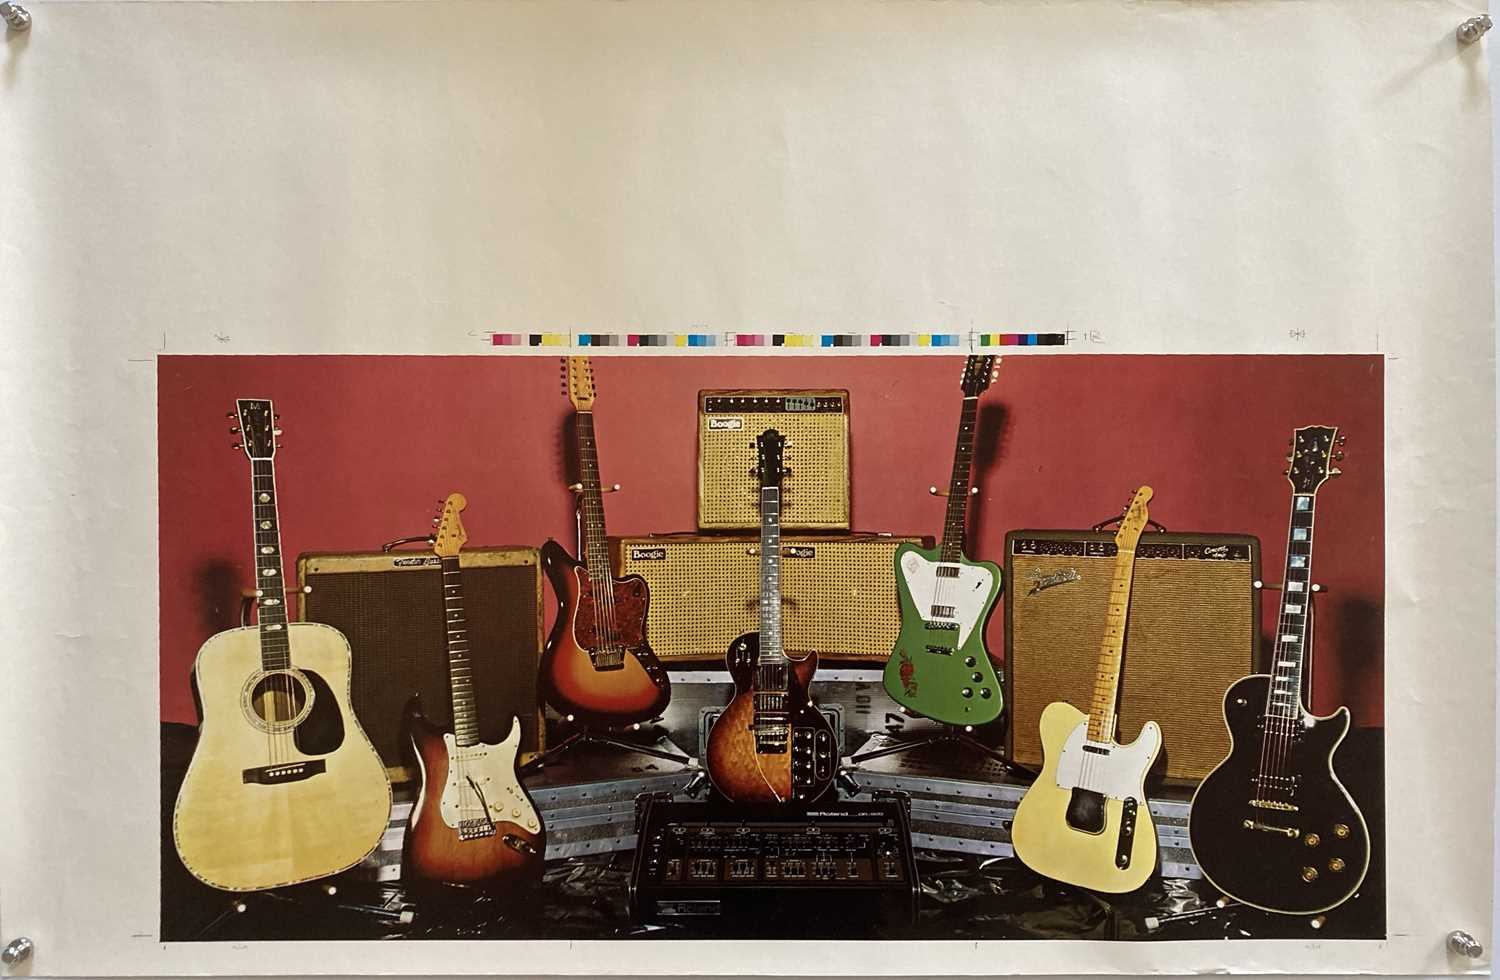 GUITAR AND AMPLIFIERS - PROMOTIONAL POSTERS. - Image 2 of 2